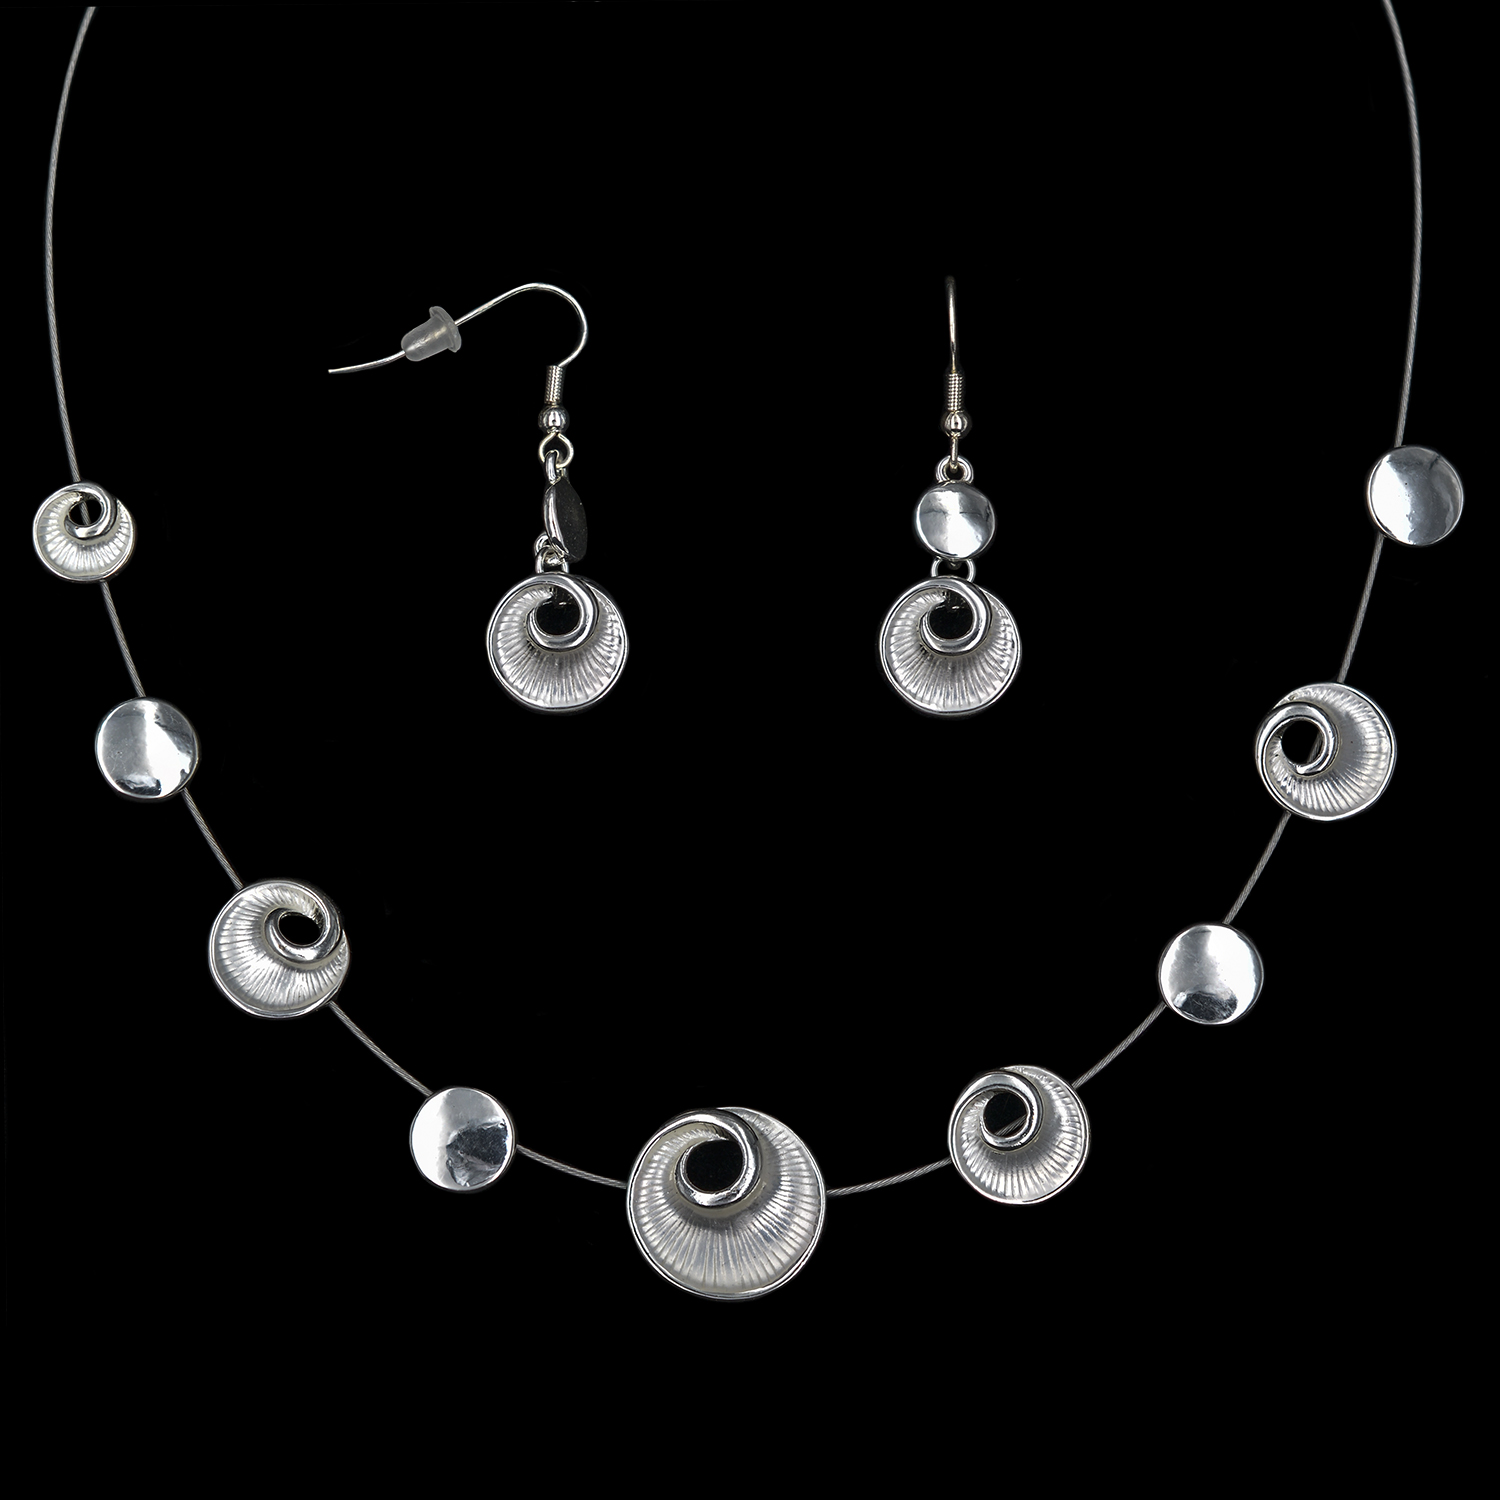 Modeschmuck-Set Collier + Ohrringe versilbert